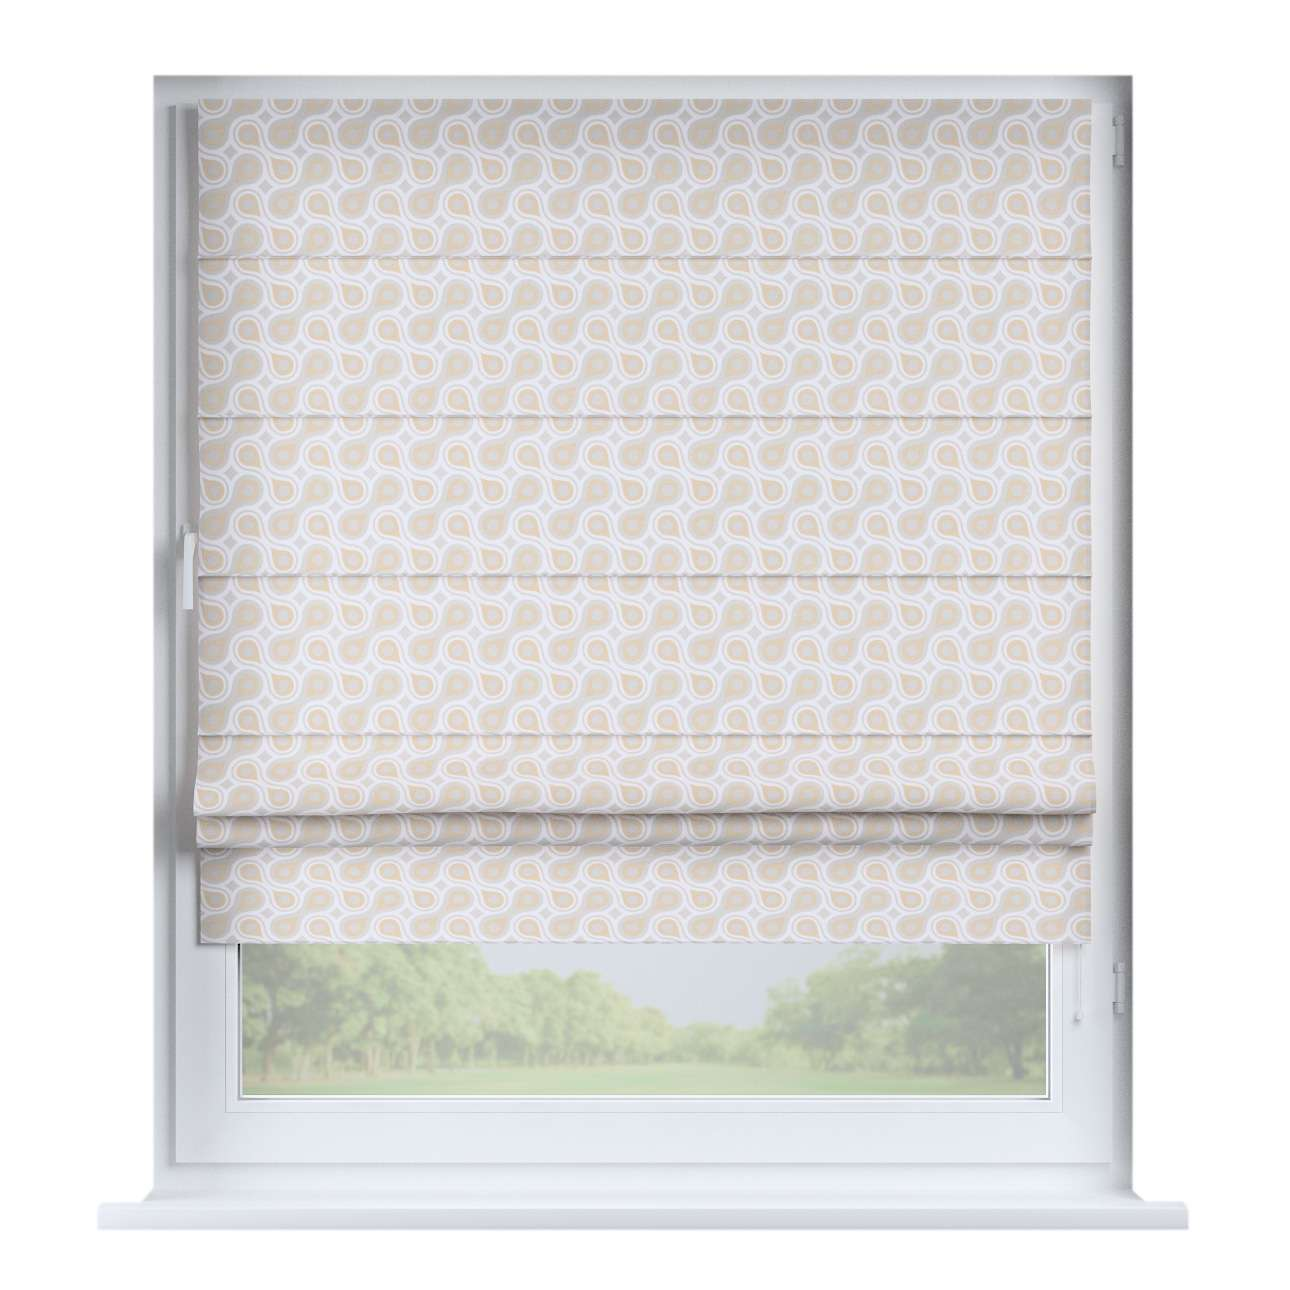 Padva roman blind  80 x 170 cm (31.5 x 67 inch) in collection Flowers, fabric: 311-11